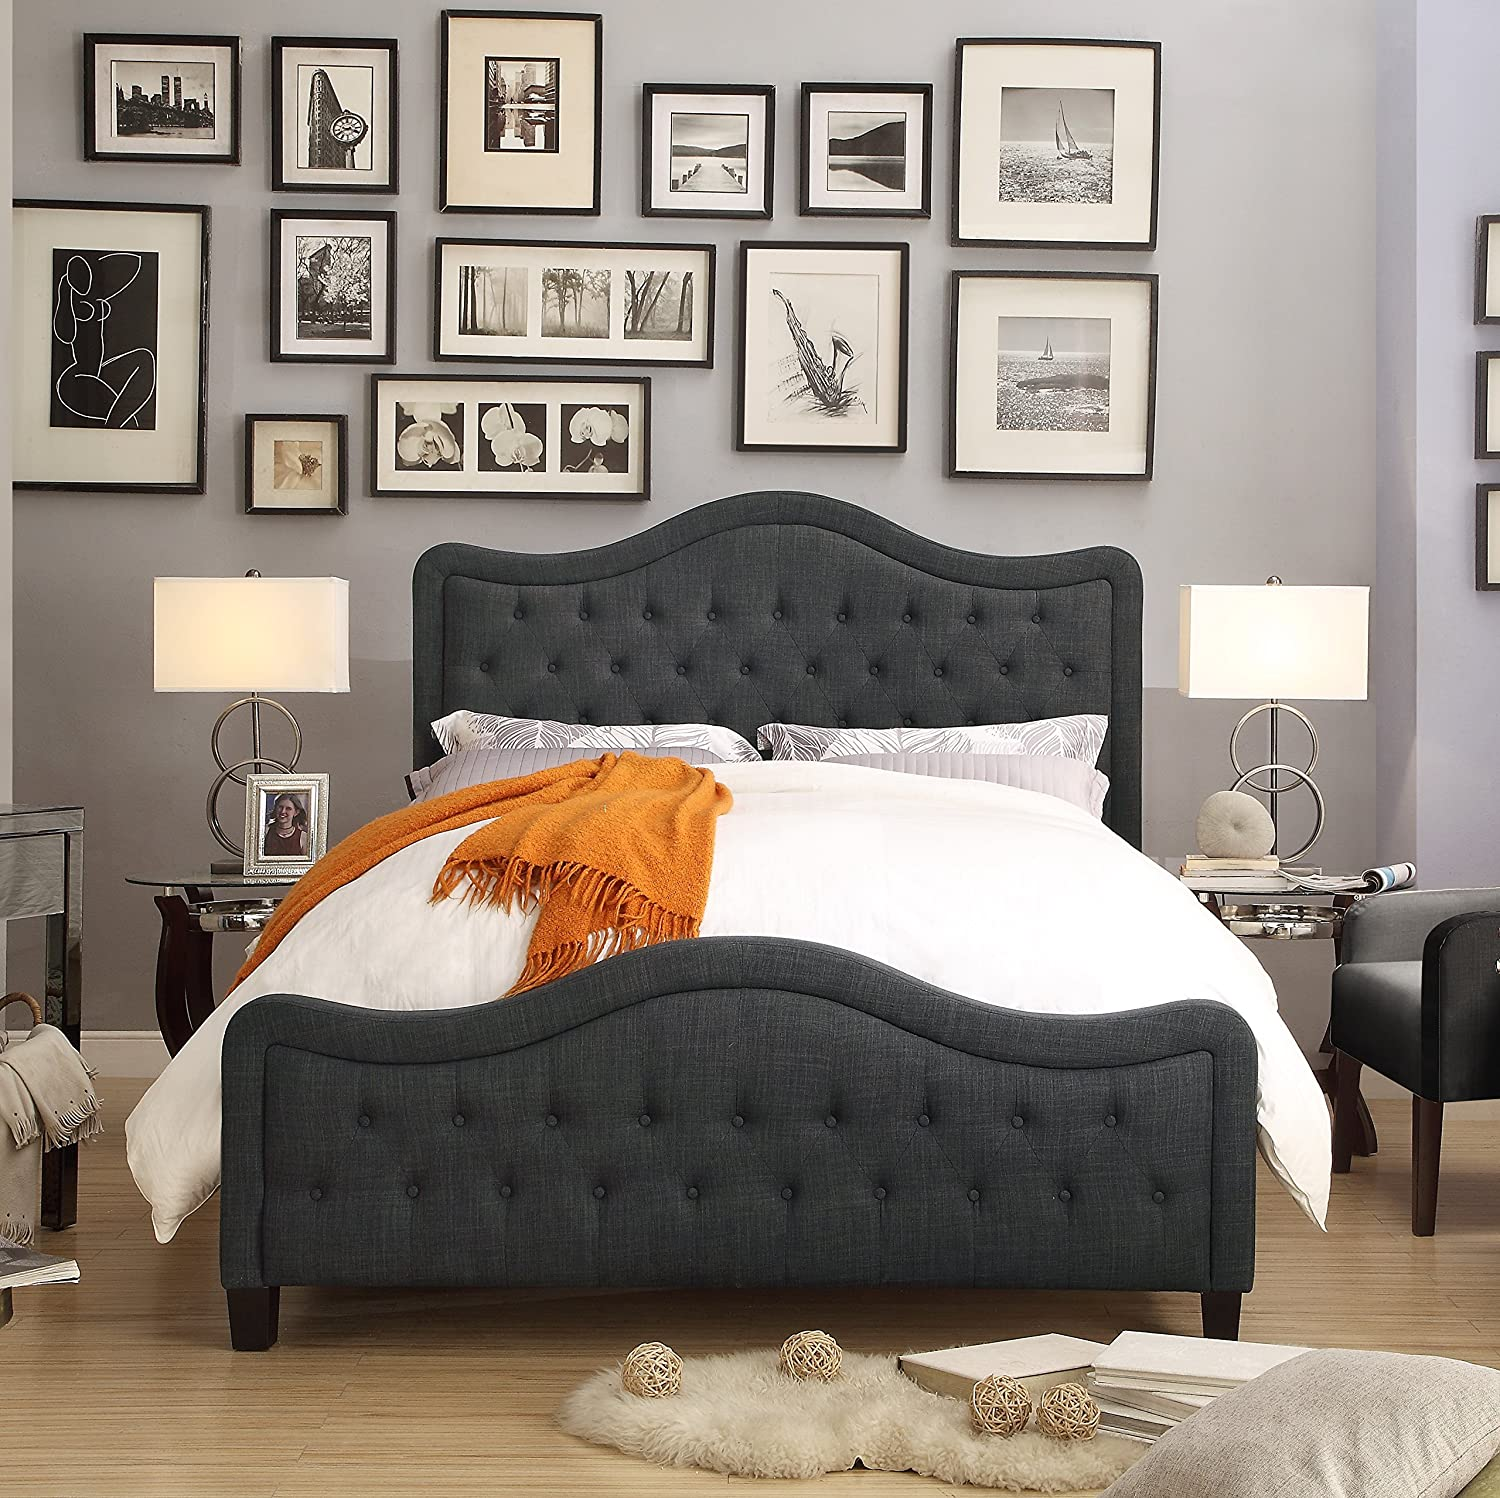 Rosevera Turin Upholstered High-Profile Footboard Panel Bed, Queen, Charcoal, Size